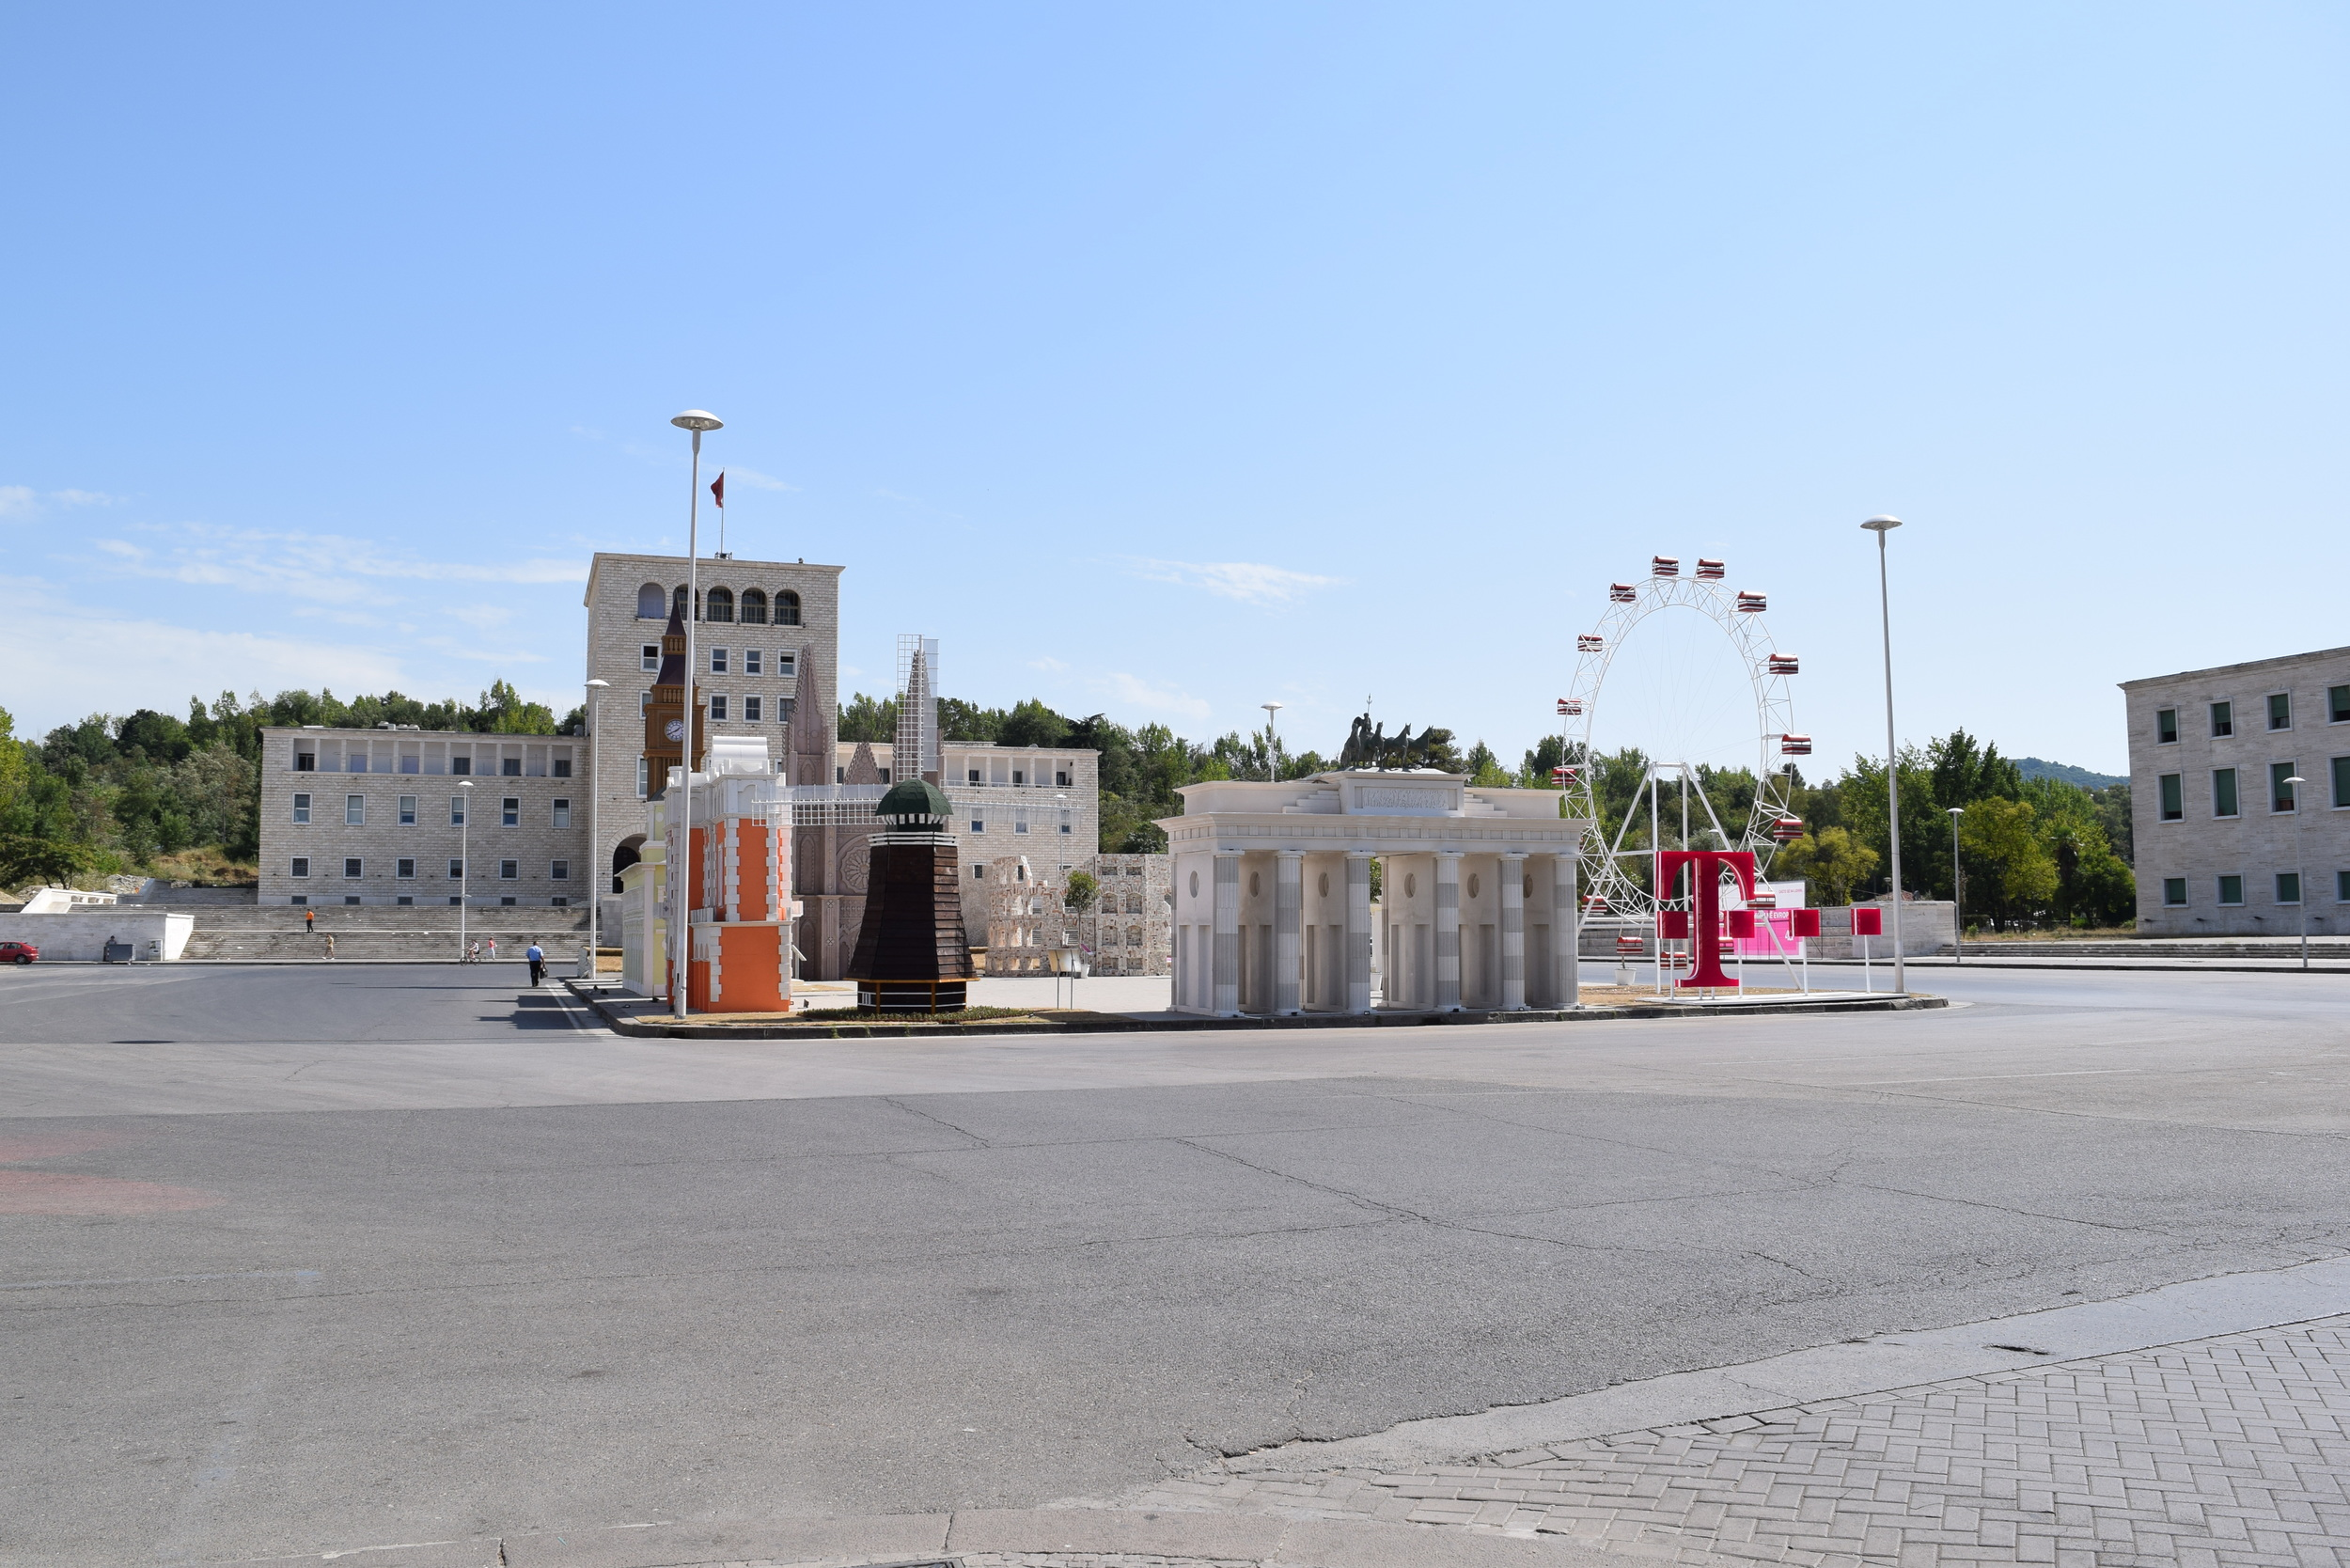 Mother Teresa Square. The middle area is a promotional plaza from T-Mobile.